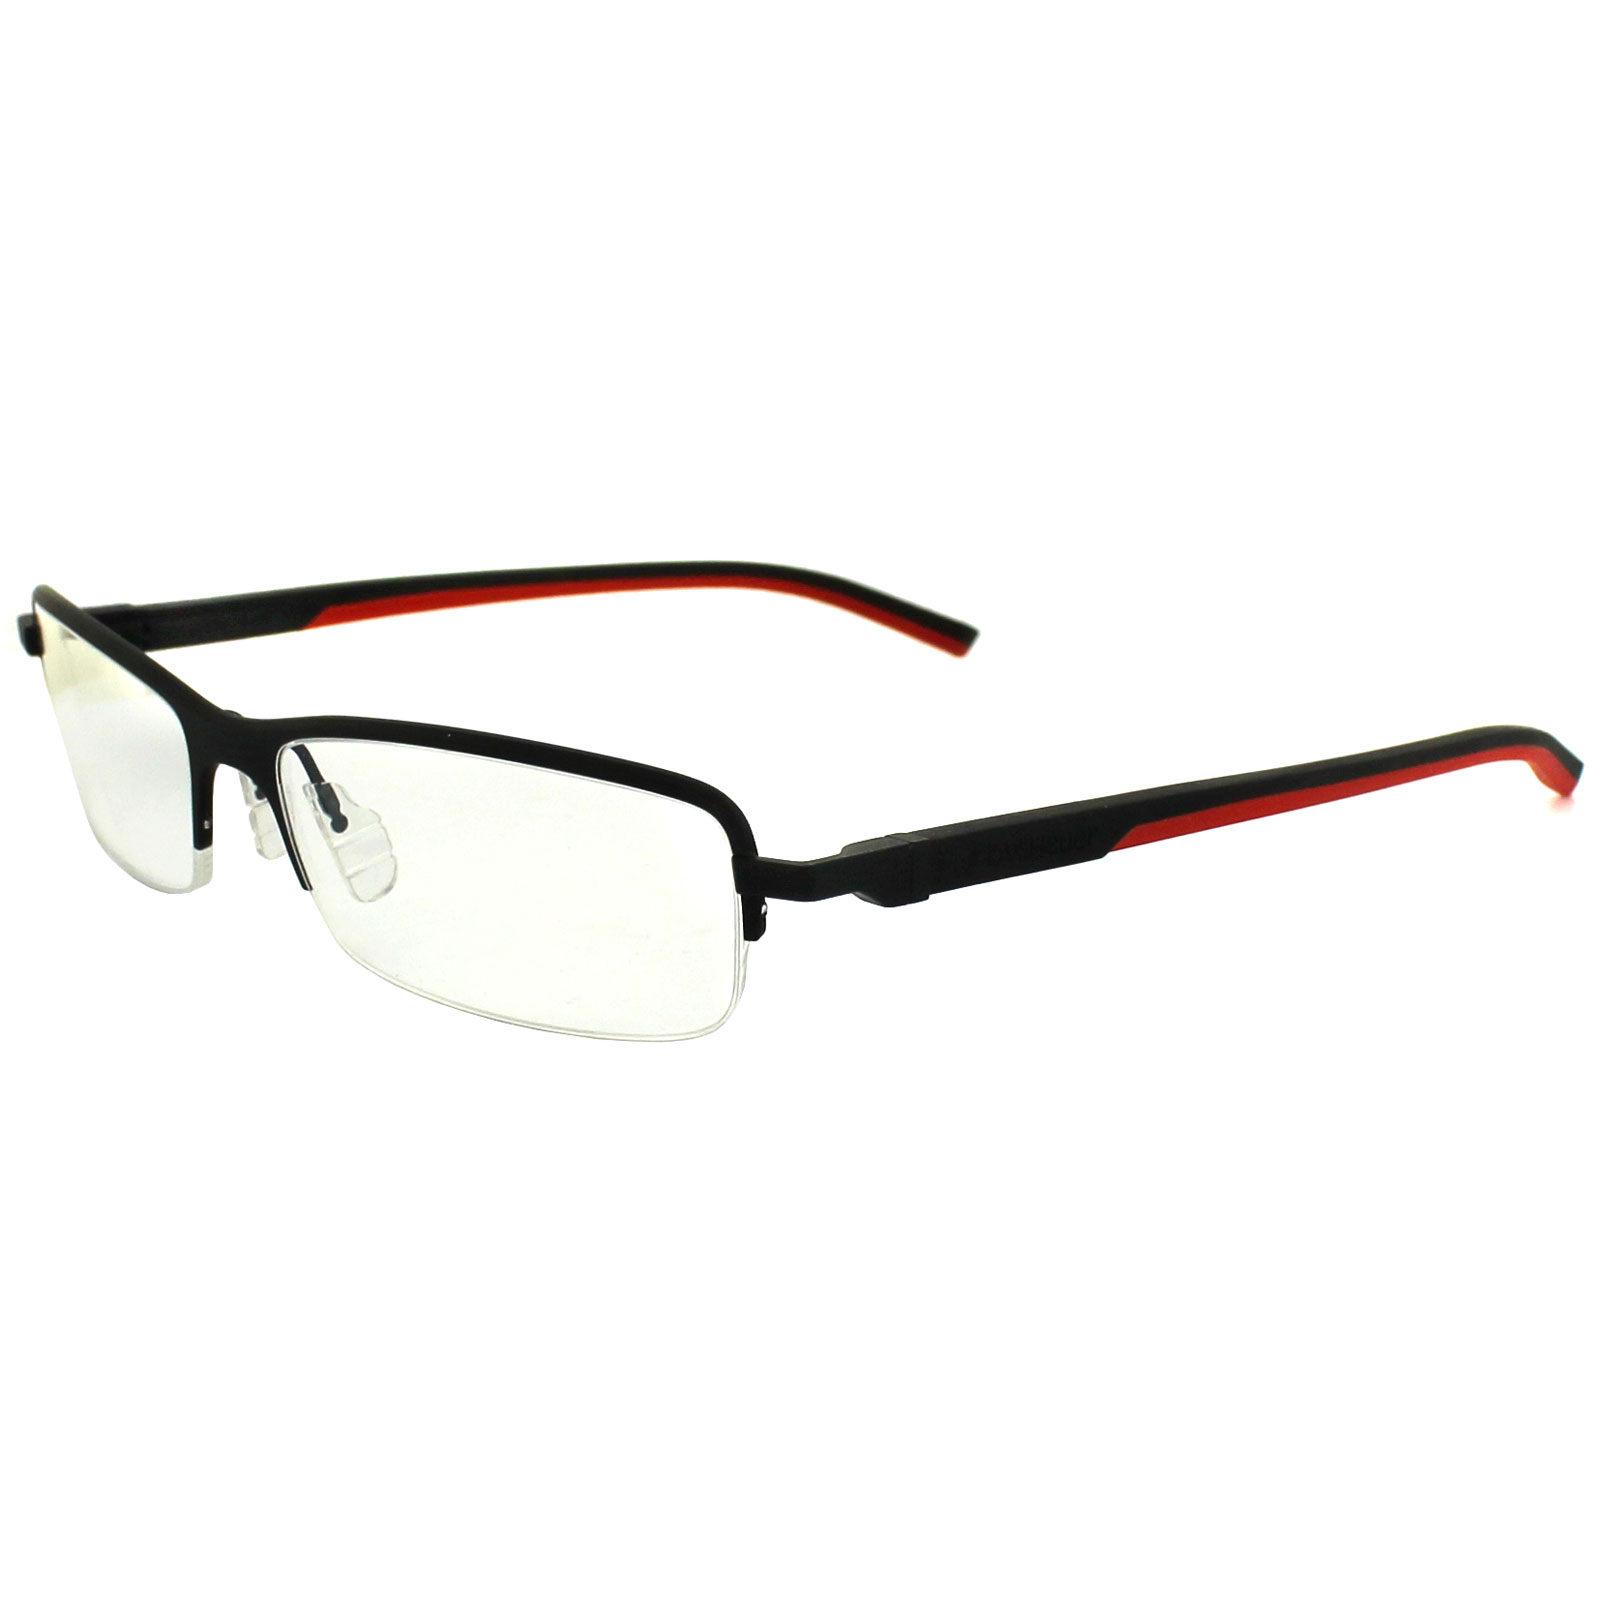 Eyeglass Frame Tag Heuer : Cheap Tag Heuer Glasses Frames Automatic 0824 012 Matt ...